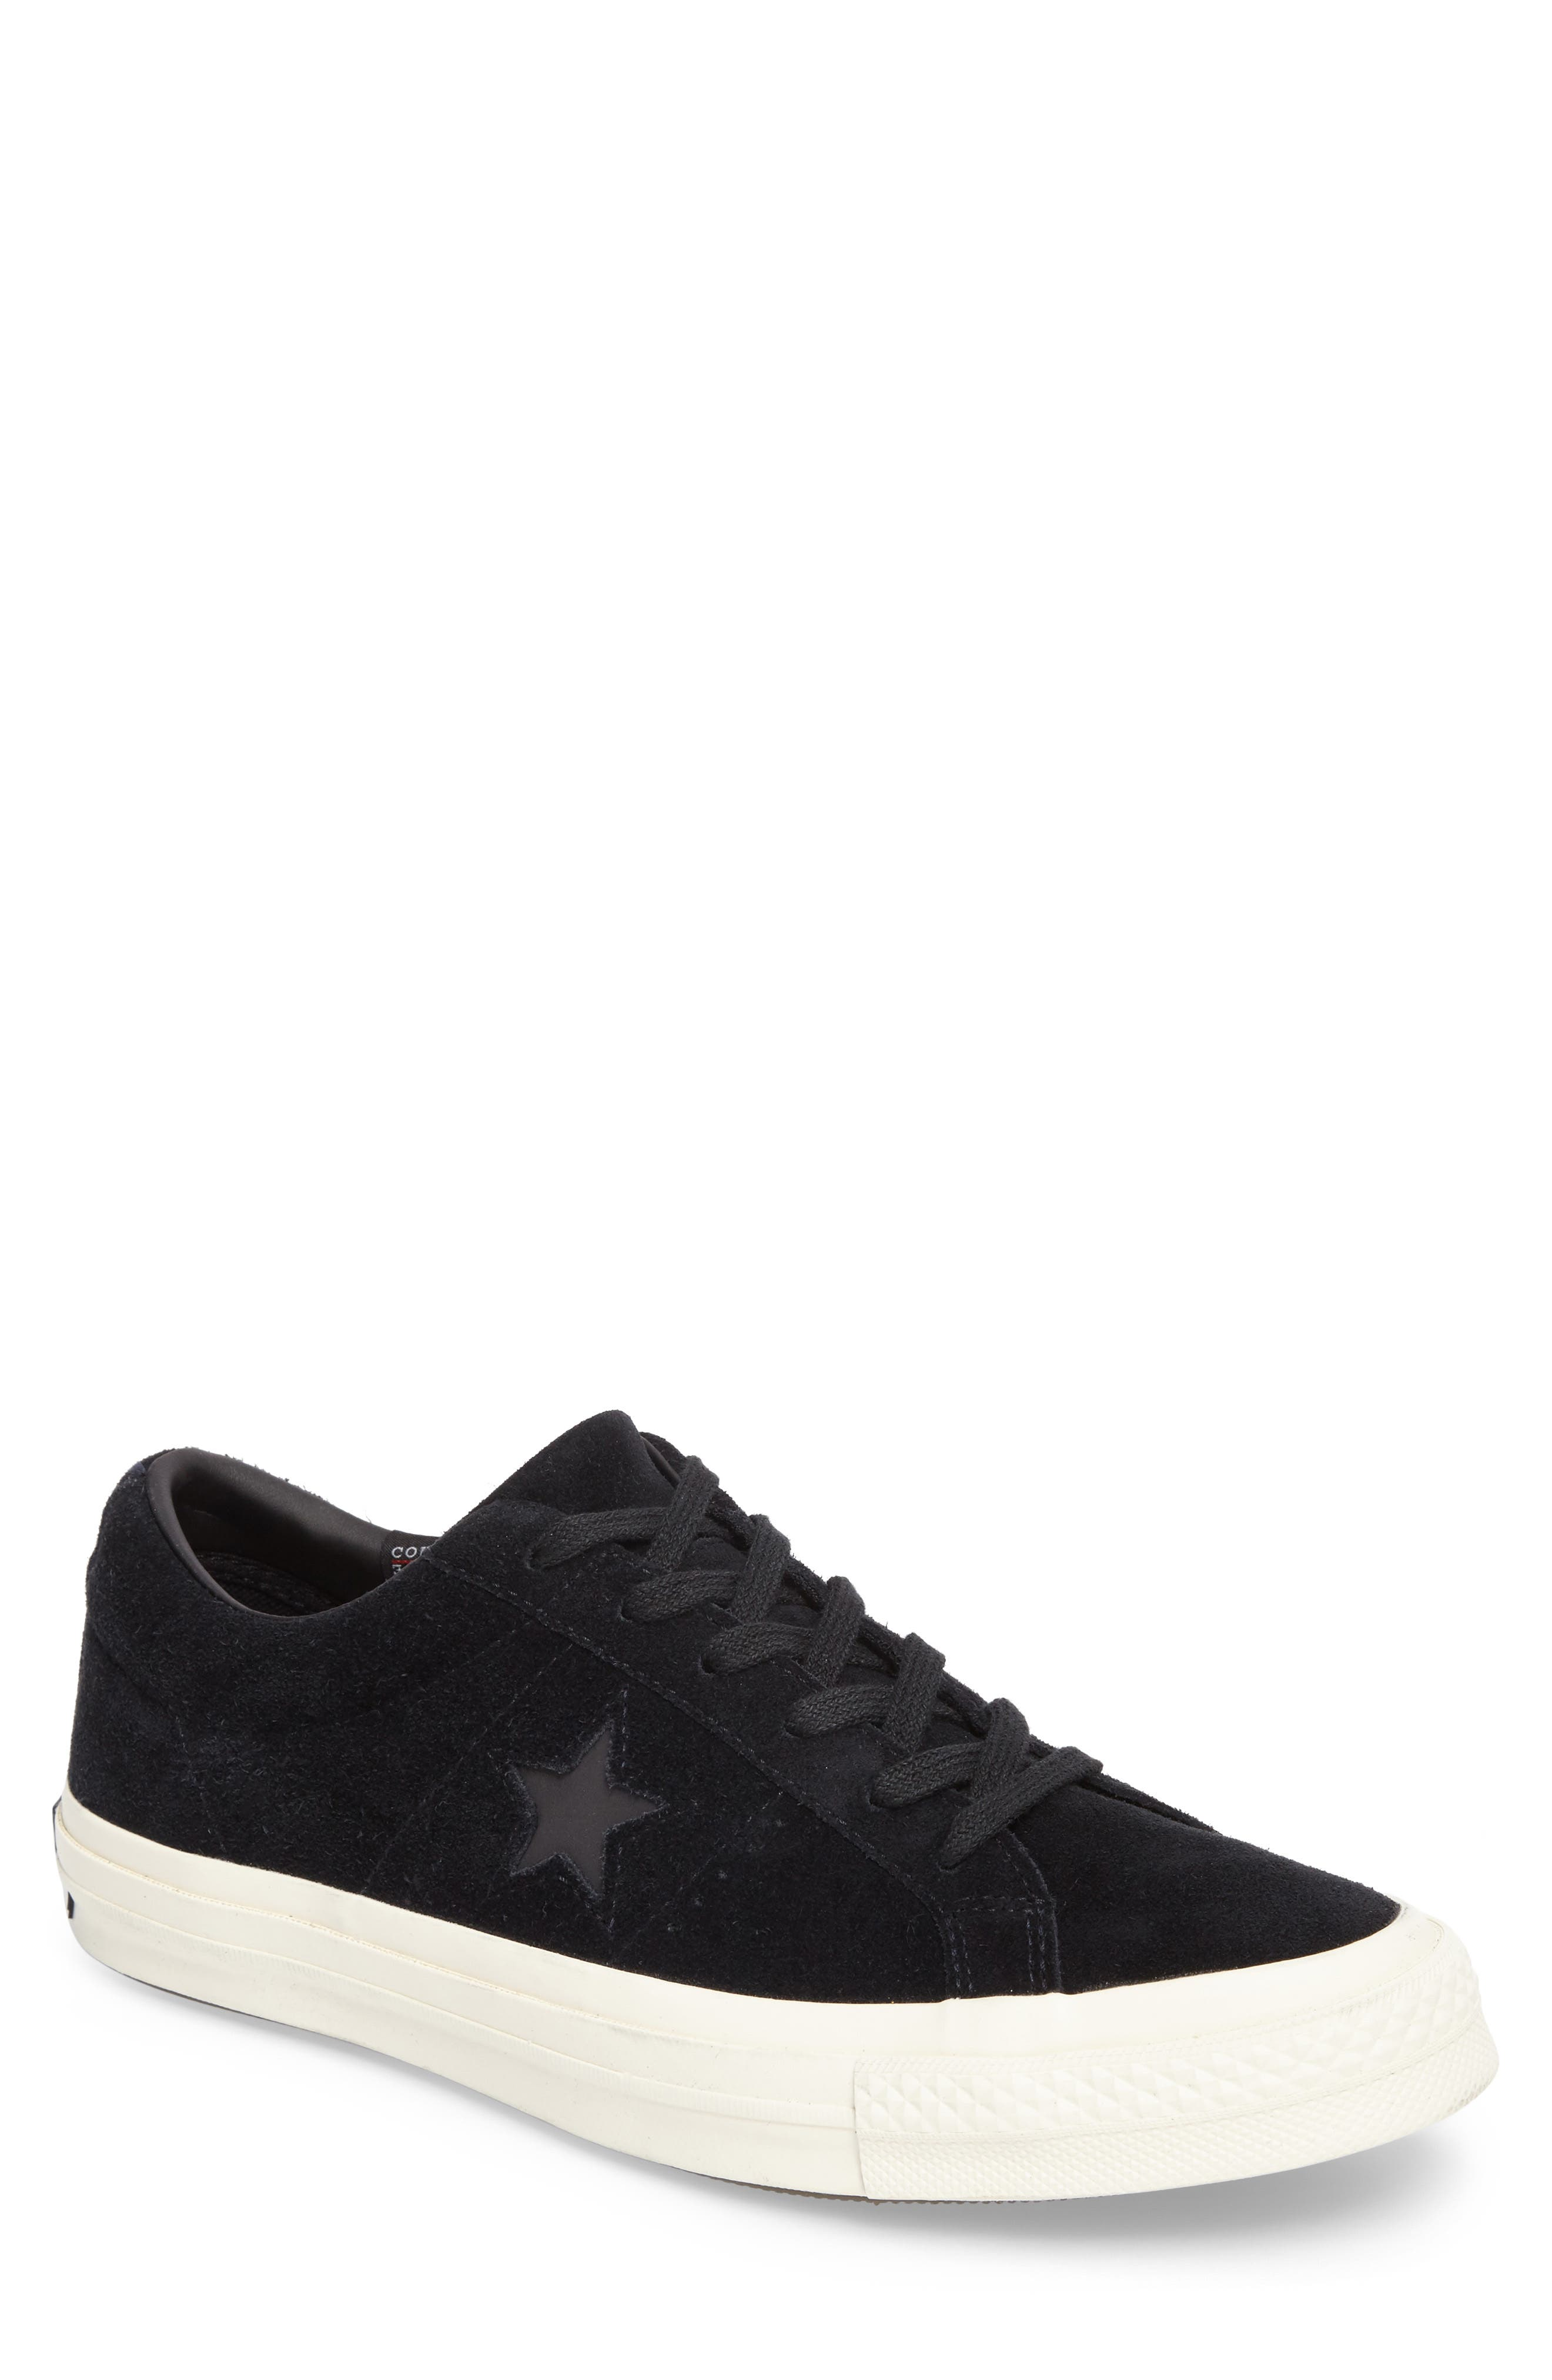 CONVERSE One Star Sneaker, Main, color, 001